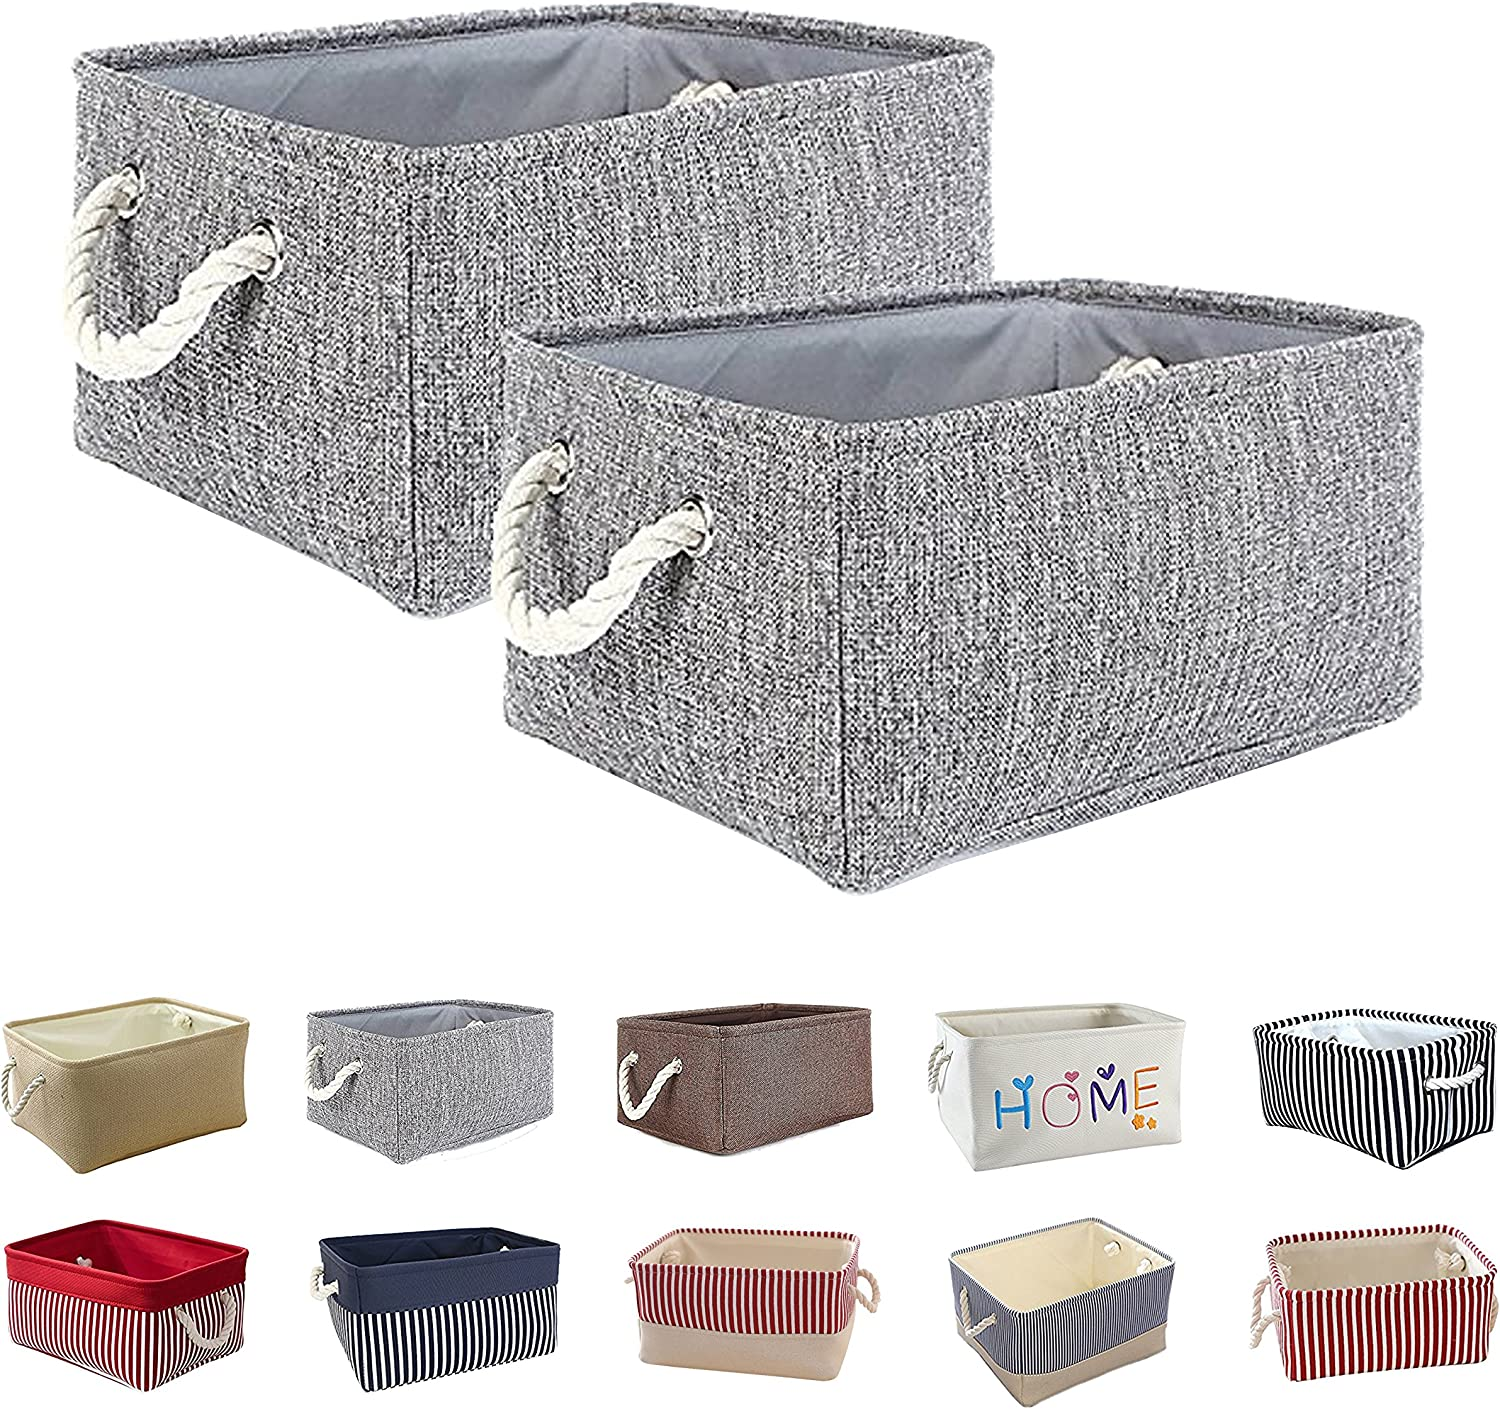 Queenie: 2 Pack Collapsible Fabric Storage Basket Home Organizer and Sizes (Grey, 30 x 20 x 13 cm (11.75 x 8 x 5 Inch))